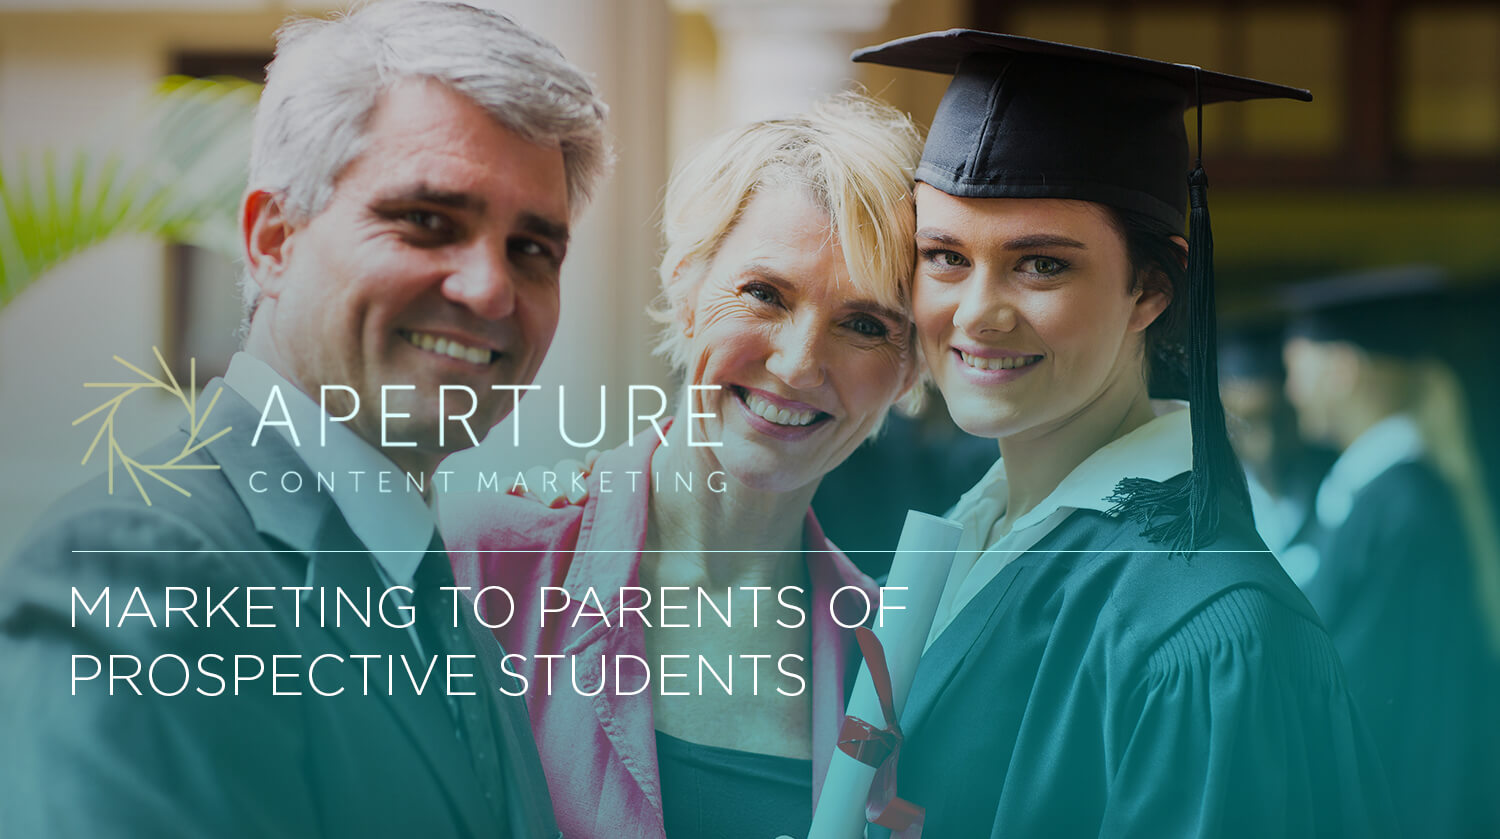 Marketing to Parents of Prospective Students